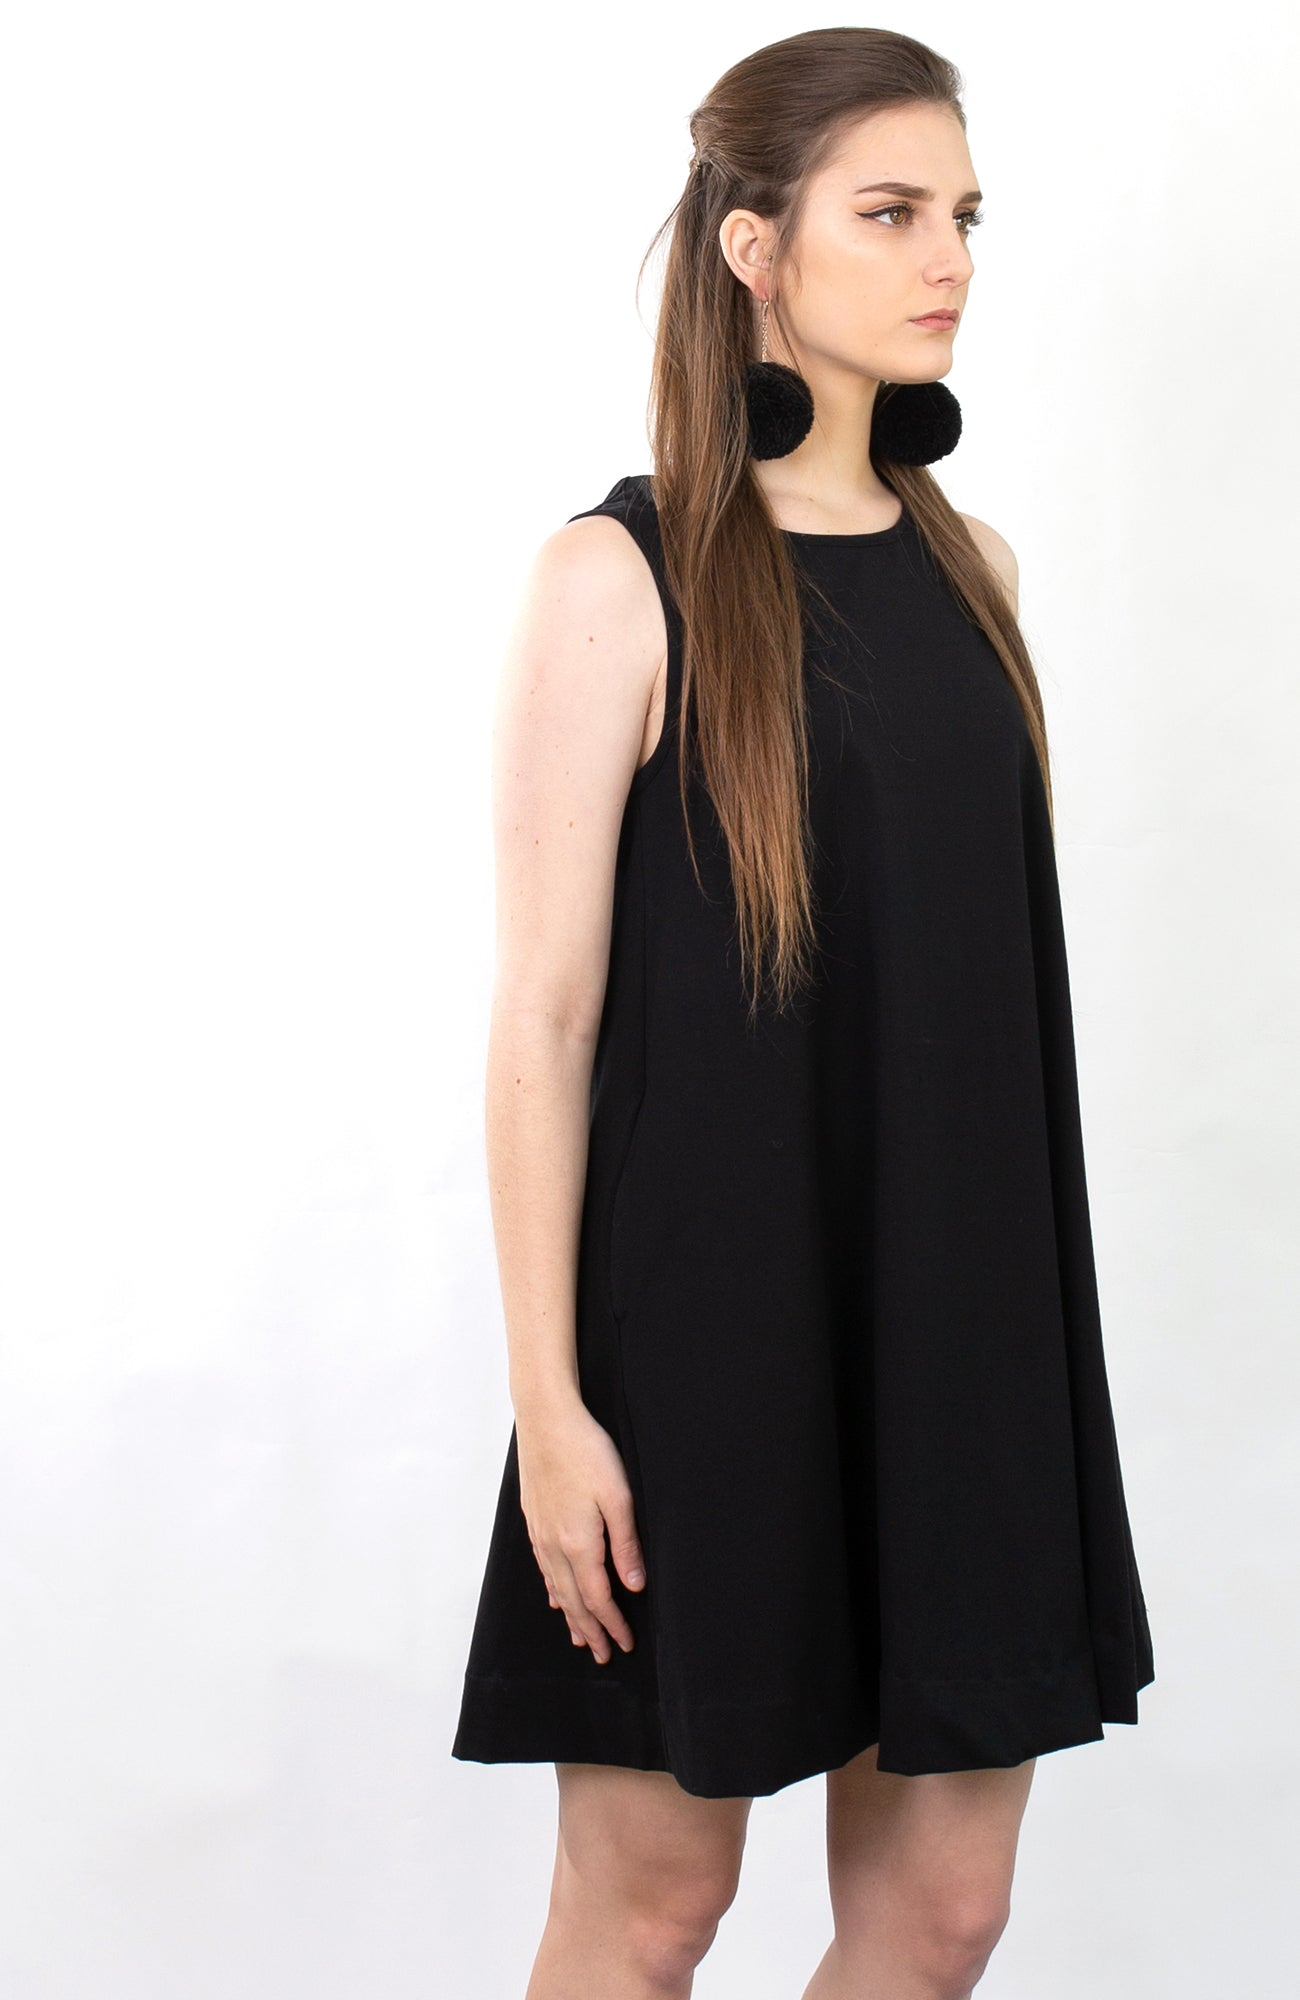 inBLACK. x Obiq Black Pom Poms - inBLACK. The Label | Women's Black Dresses